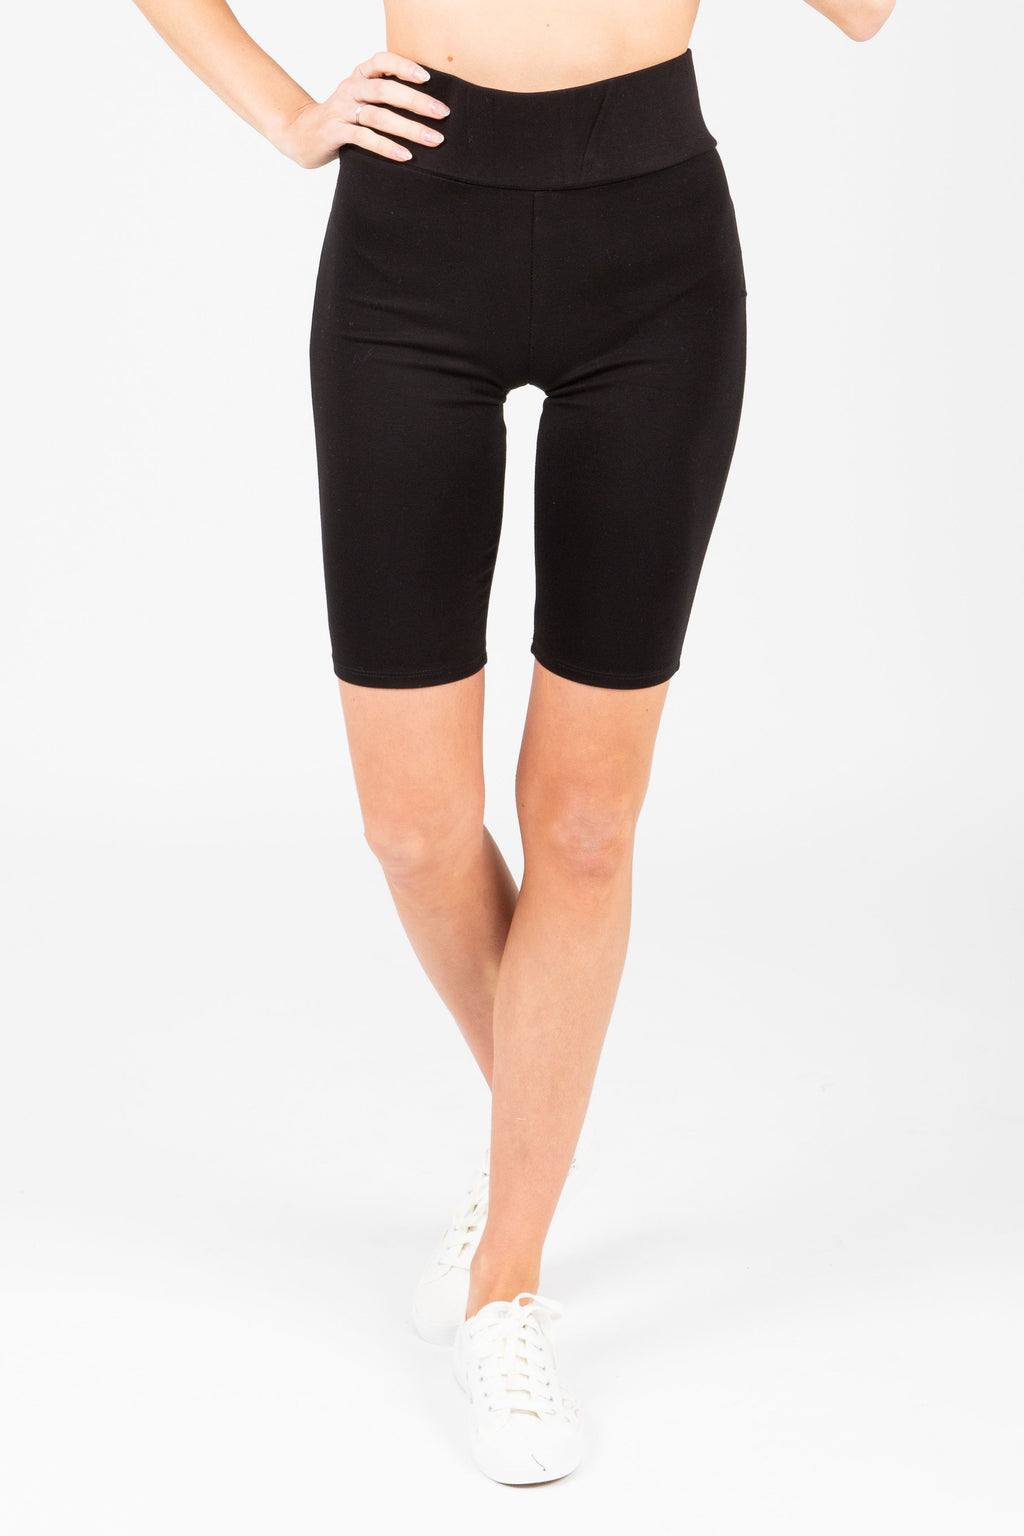 The Thick Knit Biker Short in Black, studio shoot; front view